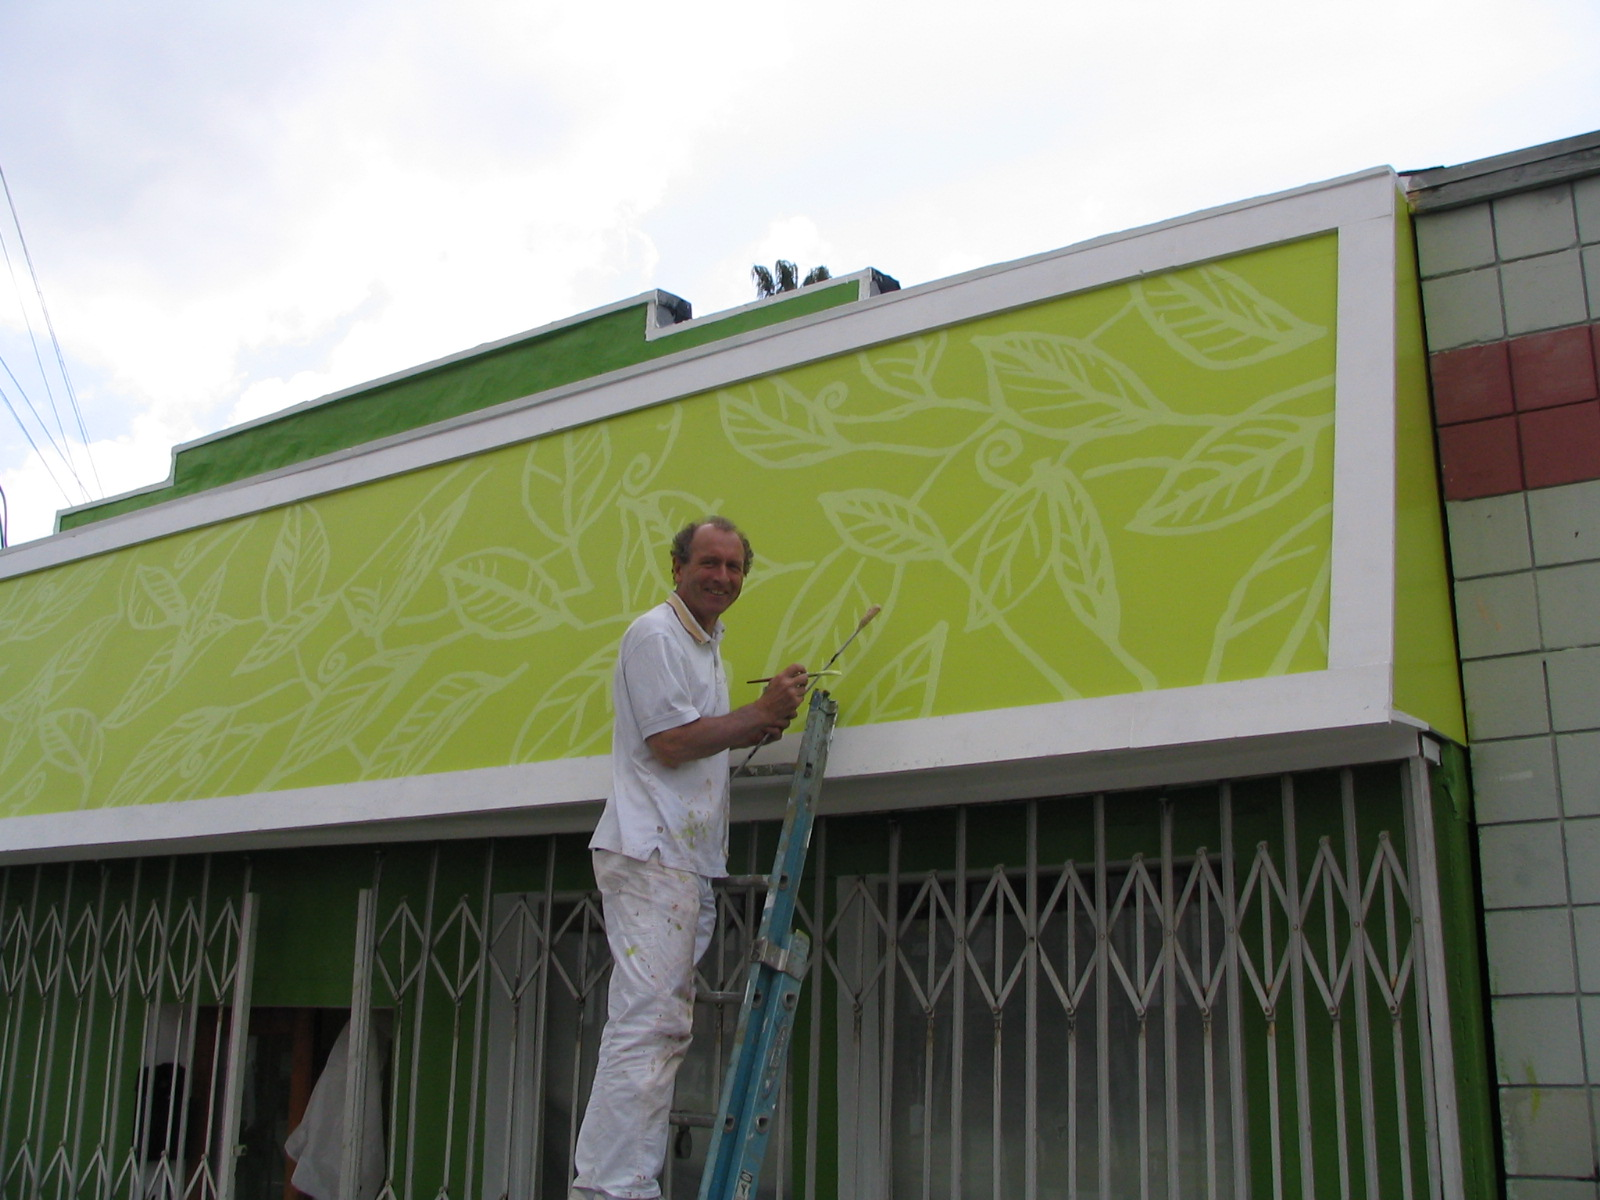 STORE EXTERIOR handpainted mural is being worked on by Paul Maxwell Godfrey